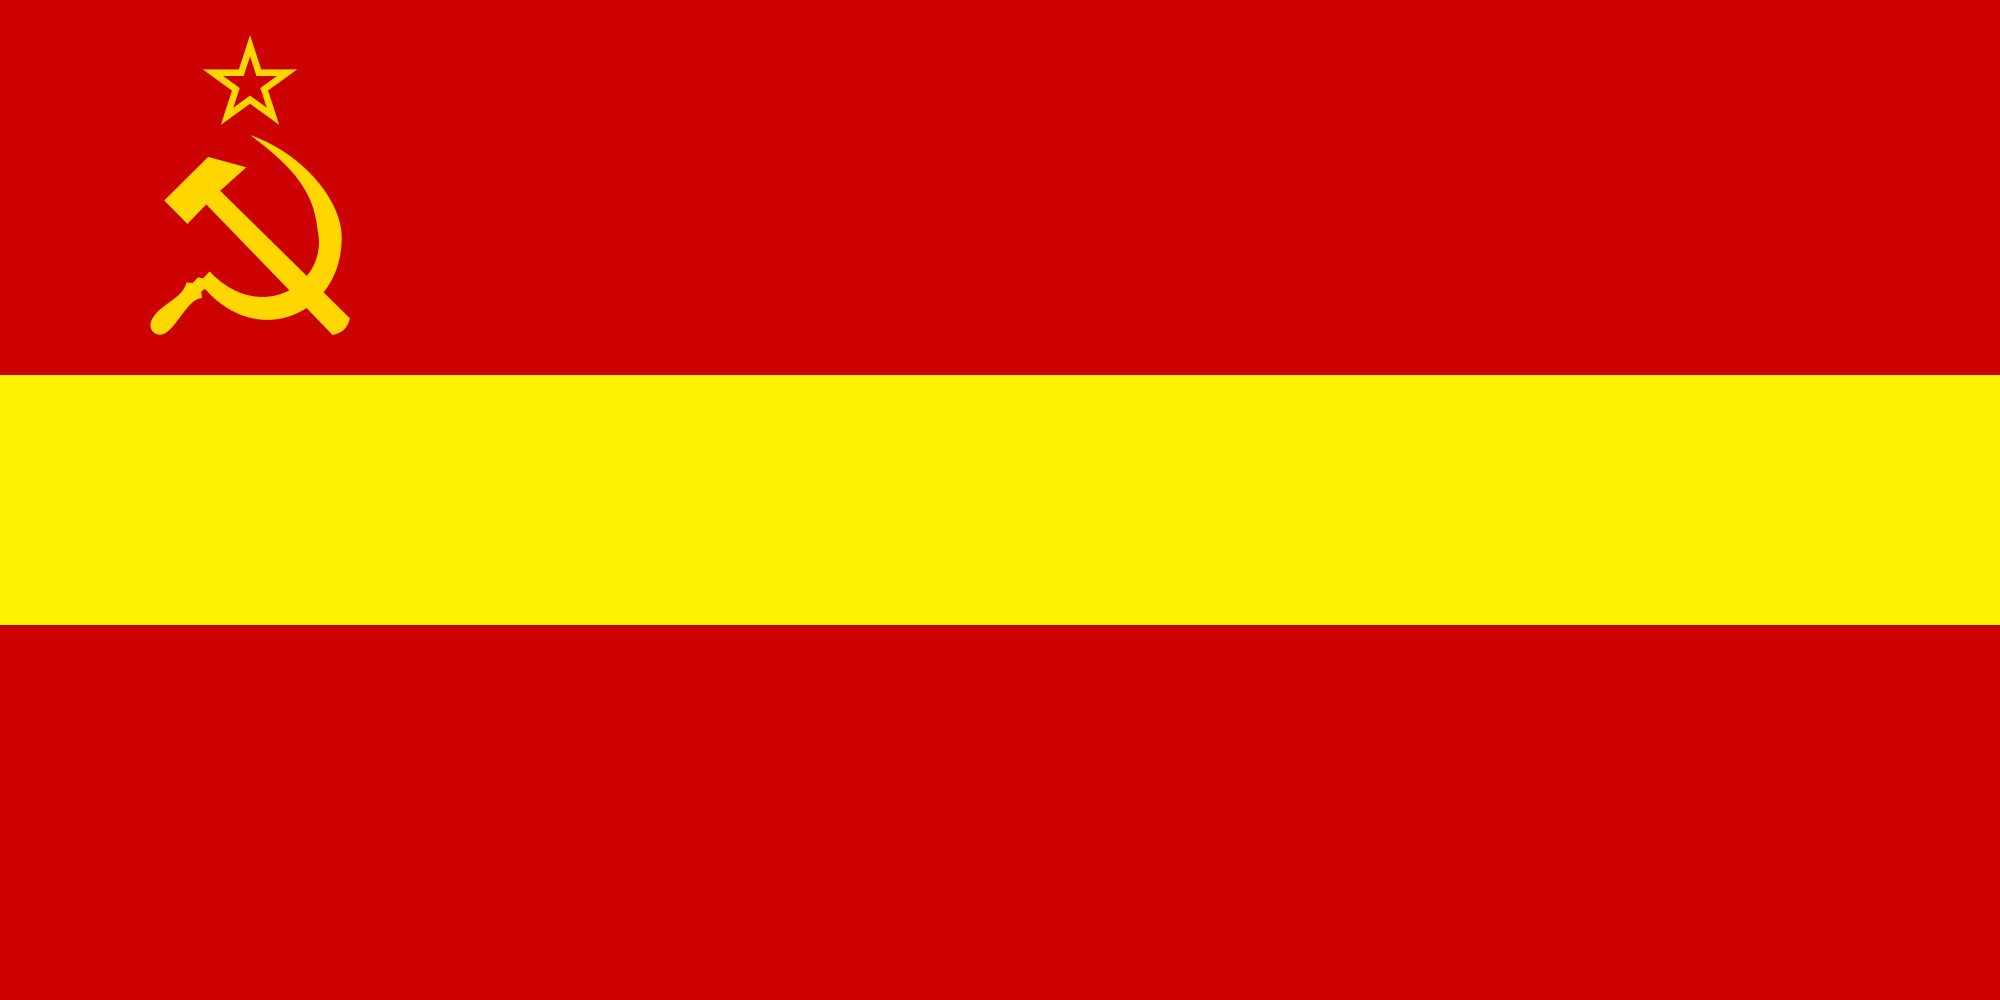 flag of chinese soviet socialist republic by zeppelin4ever on